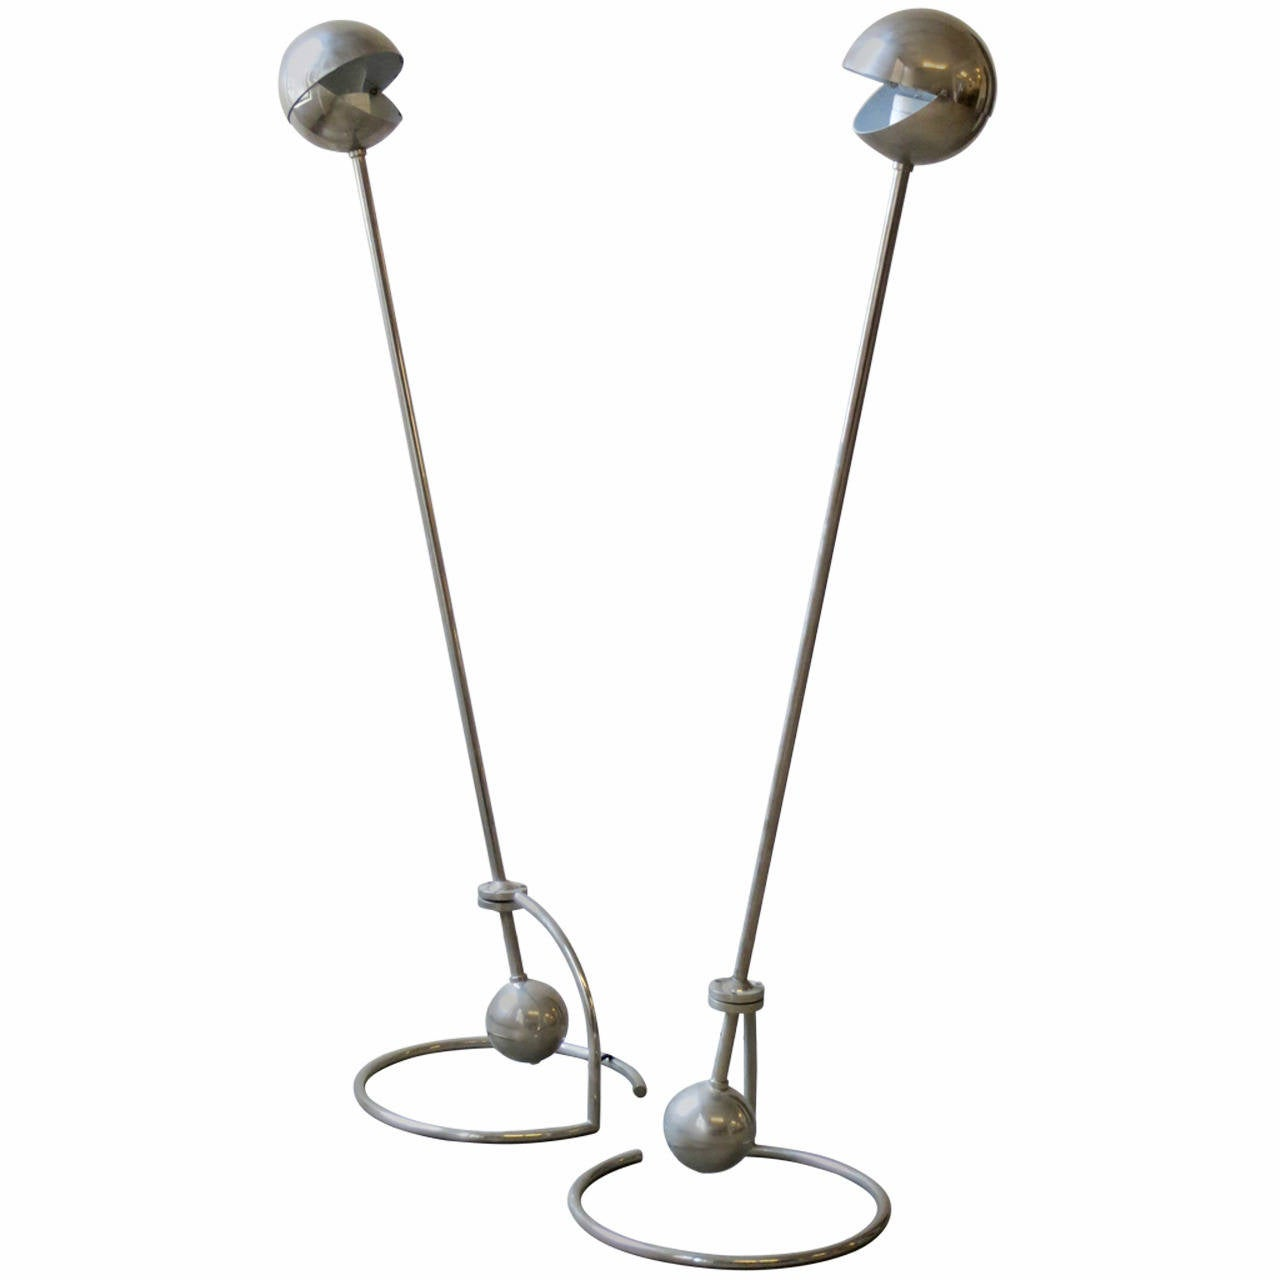 Pair of Desny Standing Lamps, by Woka, Designed 1920s For Sale